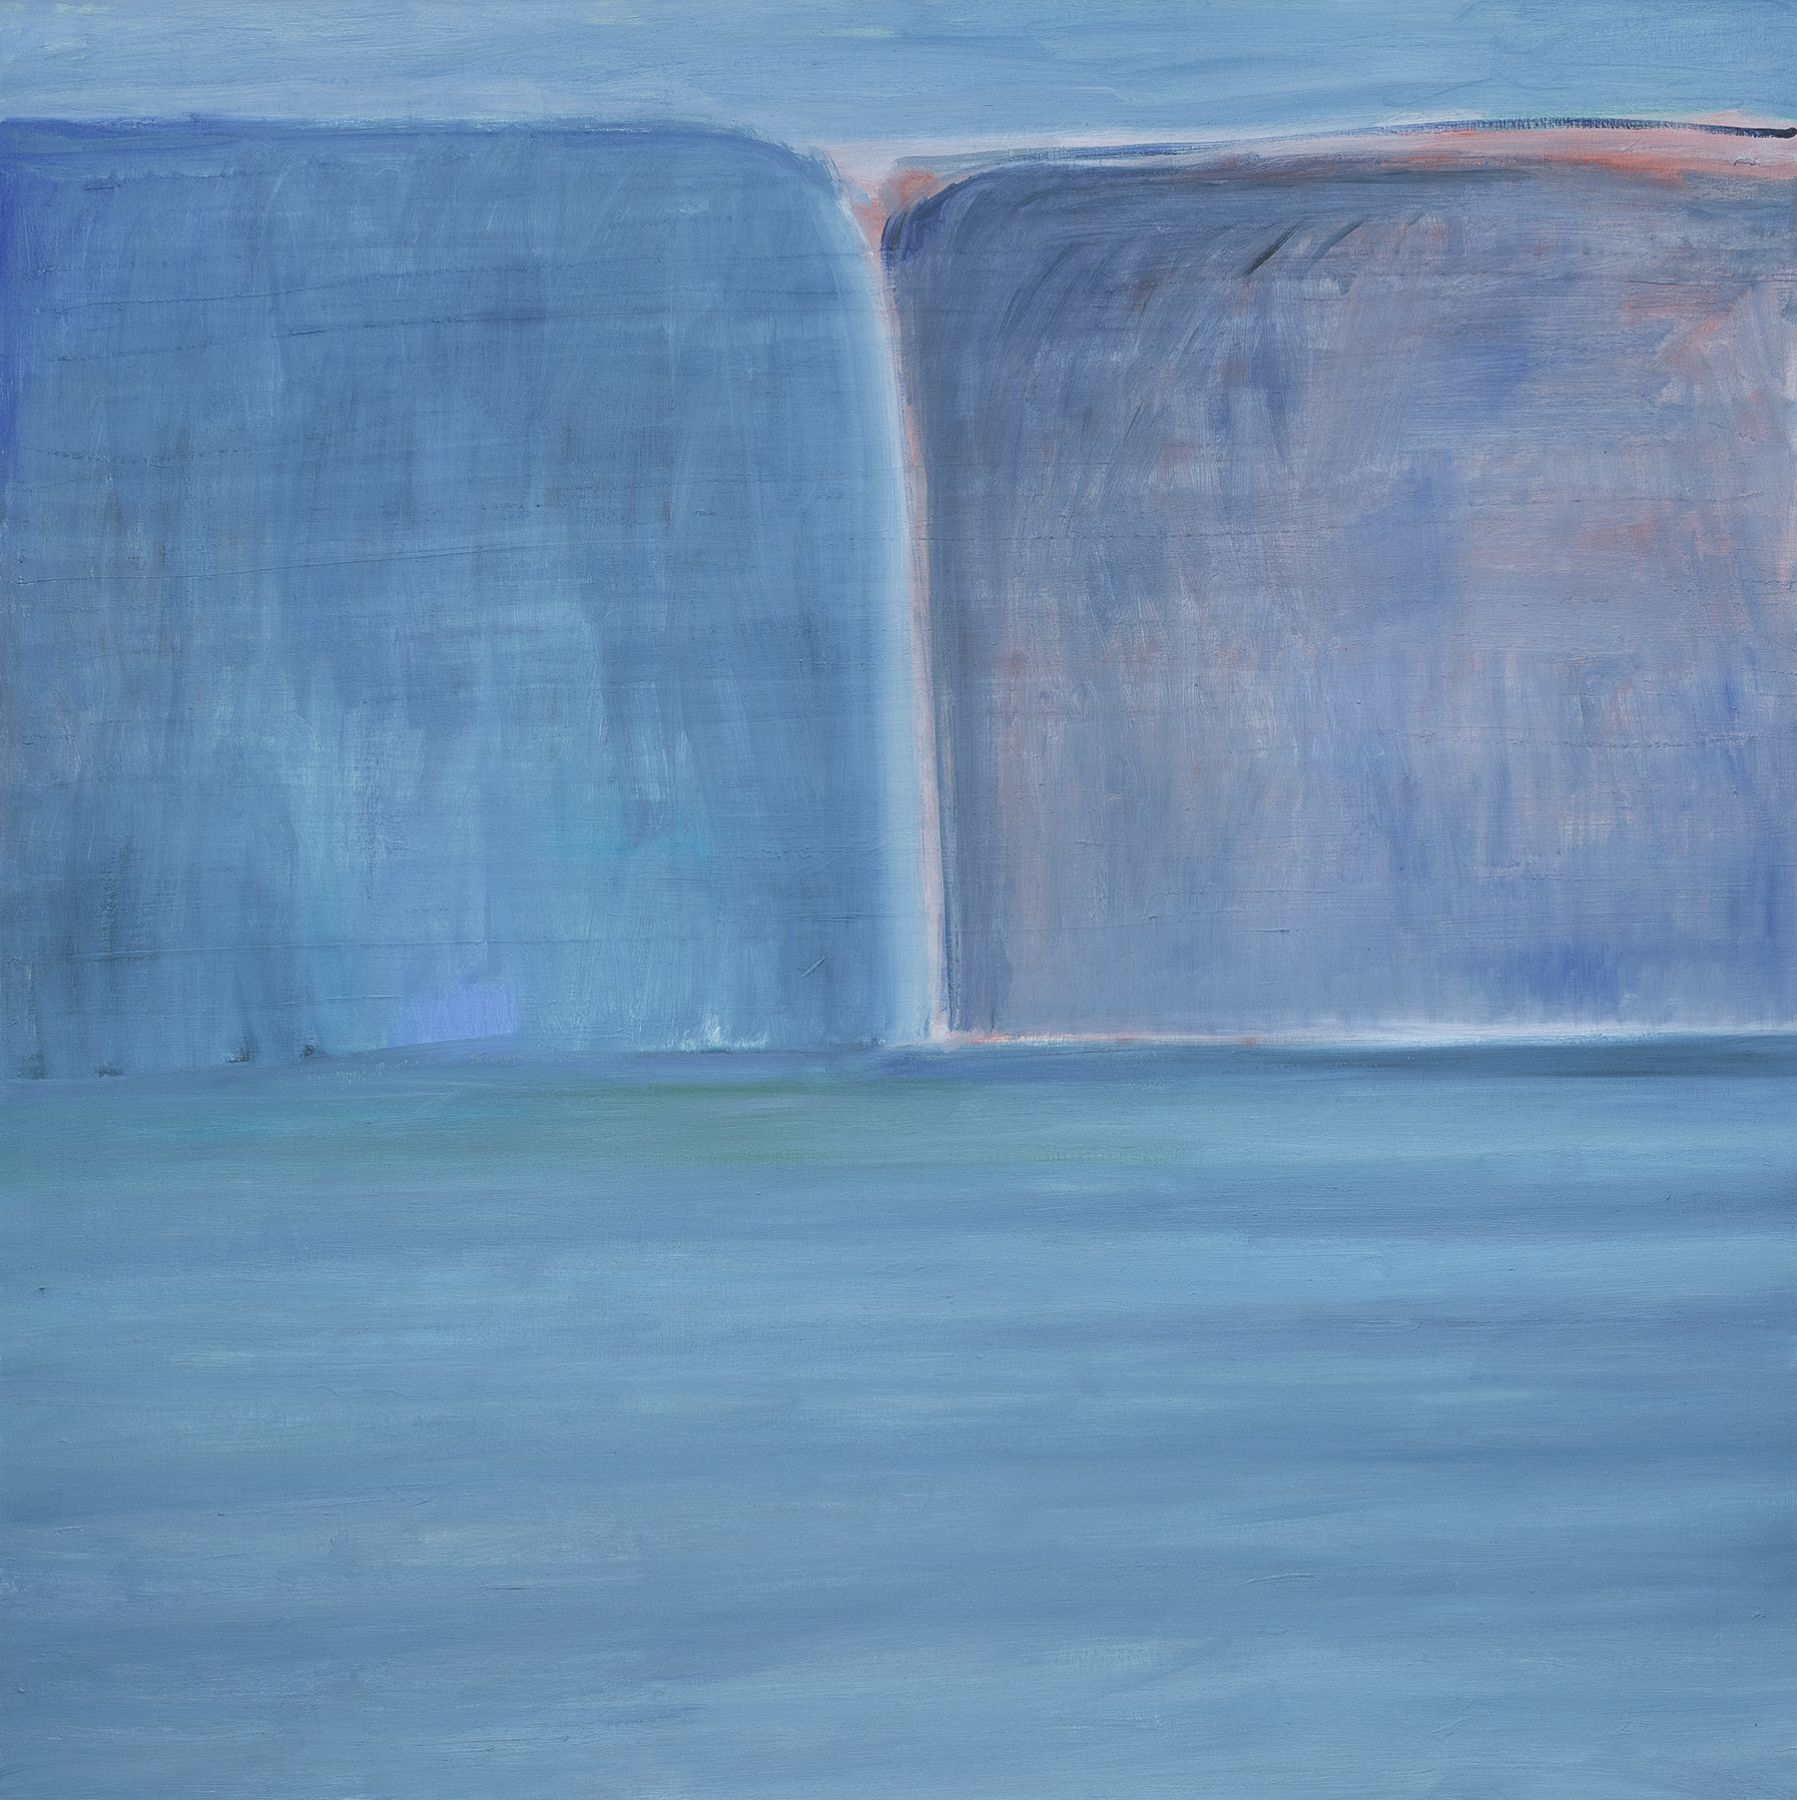 Ocean/Blue/Blue Cliffs, 1993-2018, Oil on Canvas